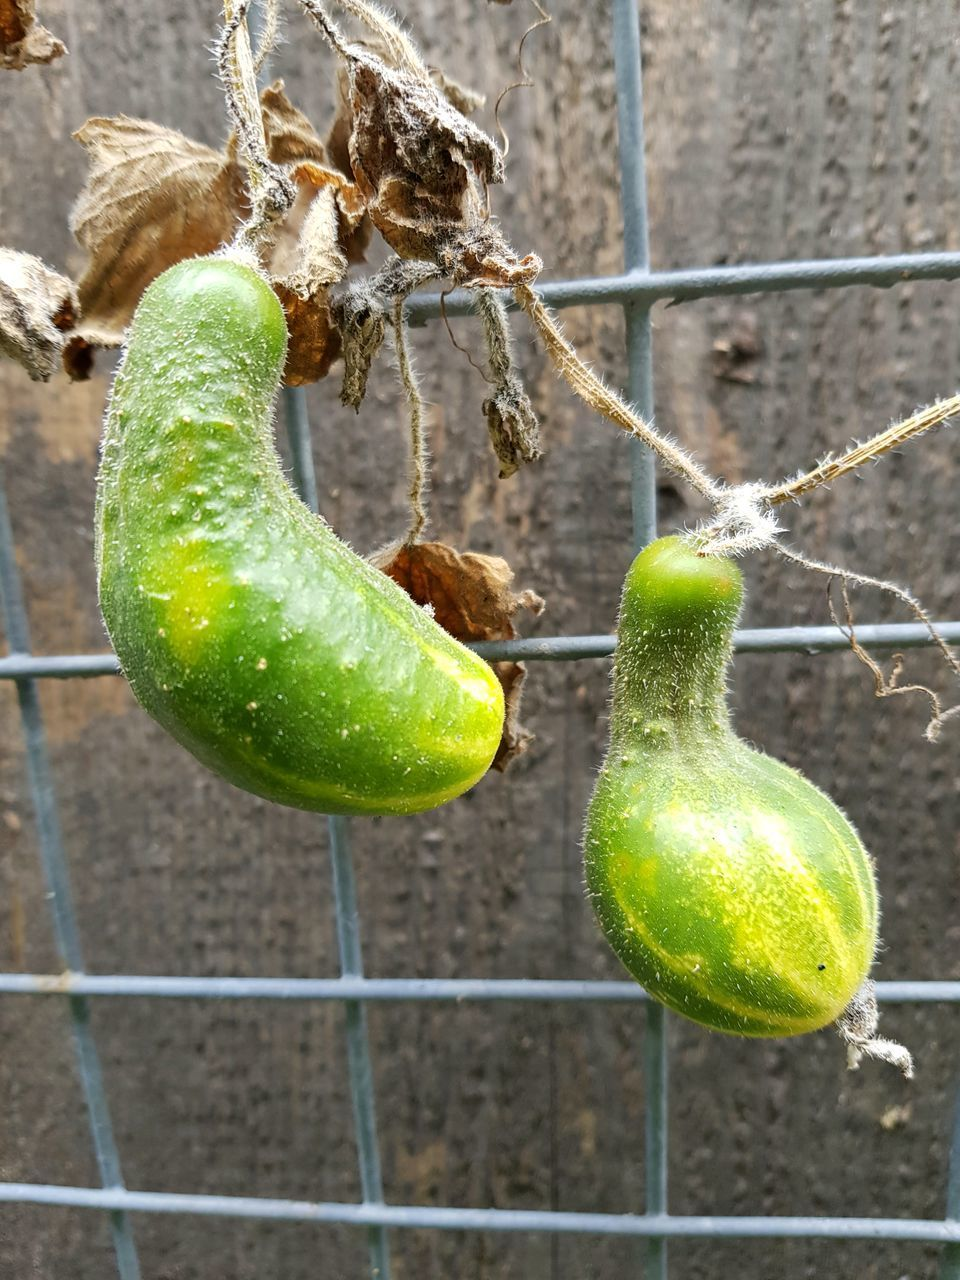 CLOSE-UP OF GREEN FRUIT ON PLANT